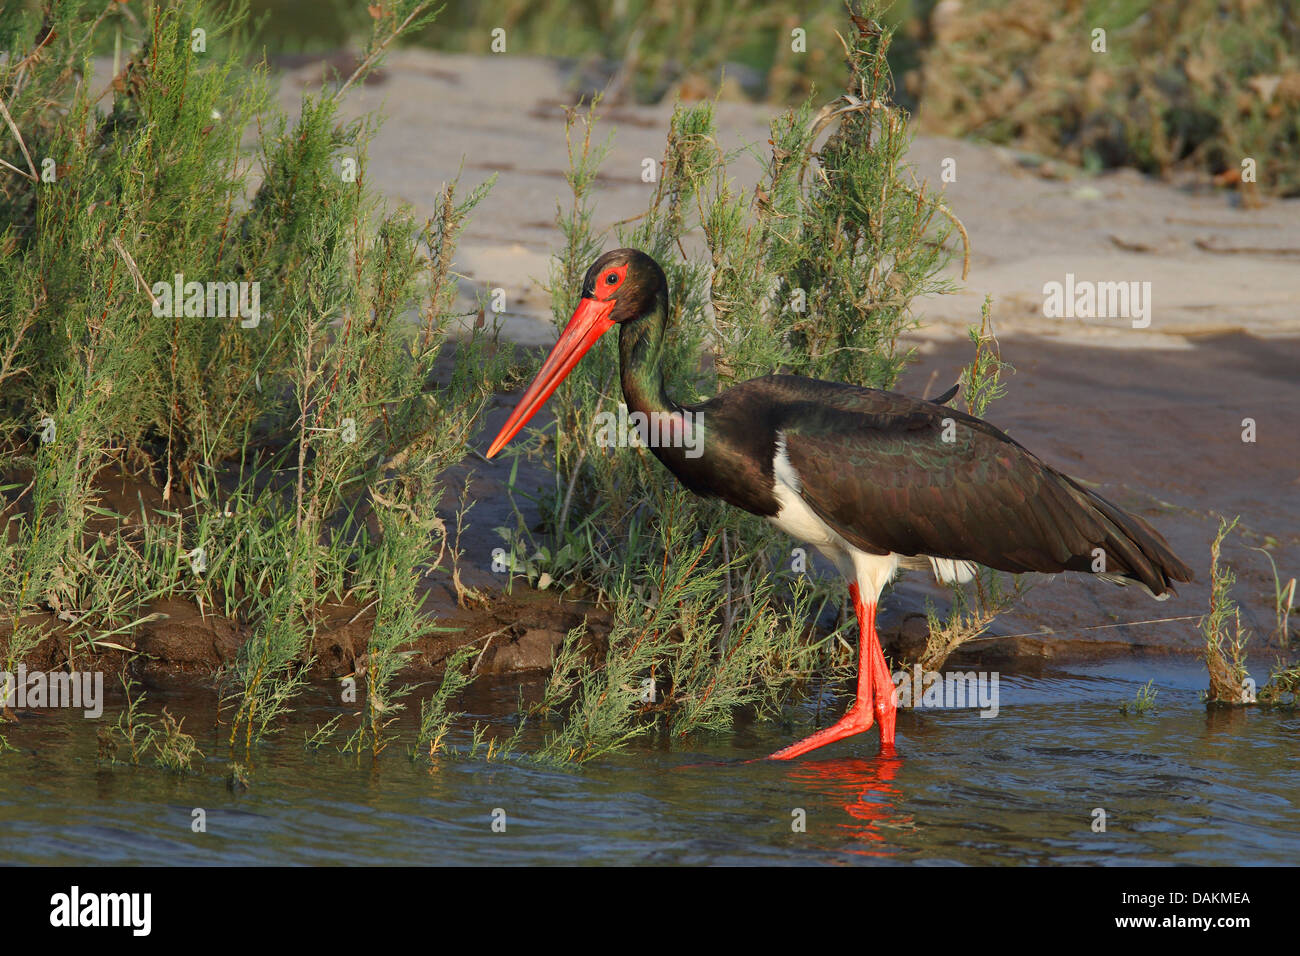 black stork (Ciconia nigra), looking for food in a river, Greece, Lesbos - Stock Image